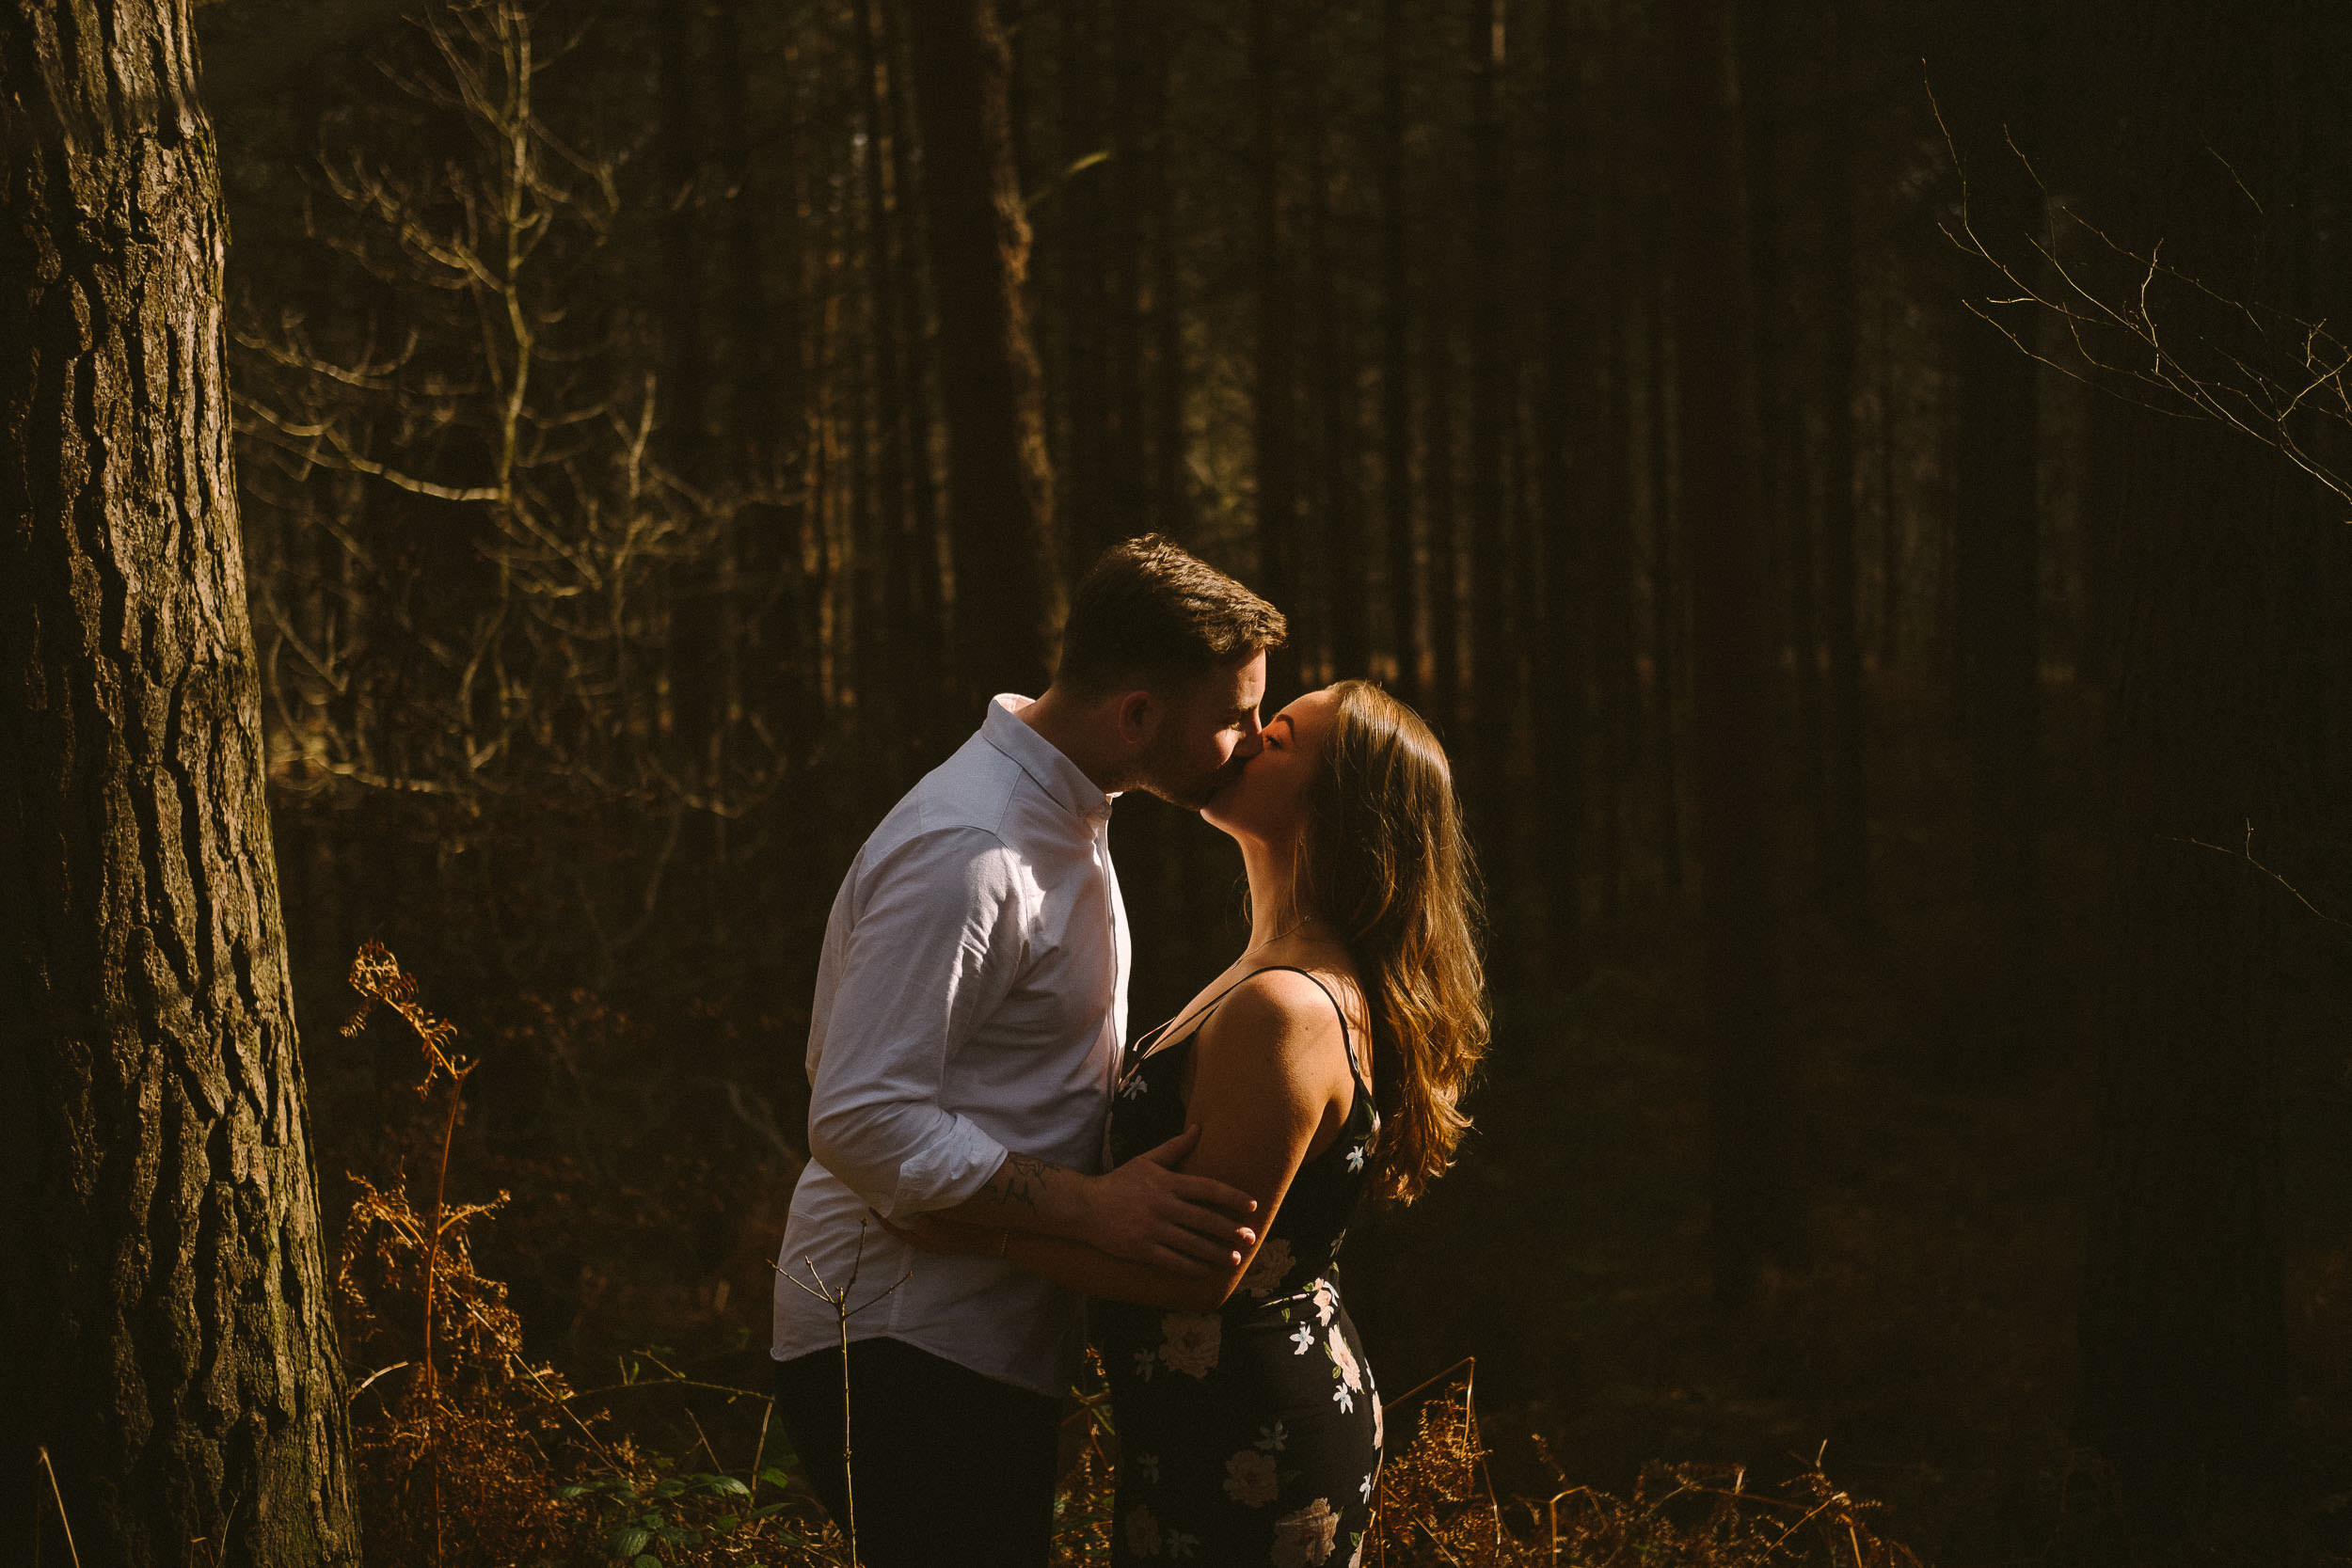 Couple kiss in dramatic sunlight punching through the trees